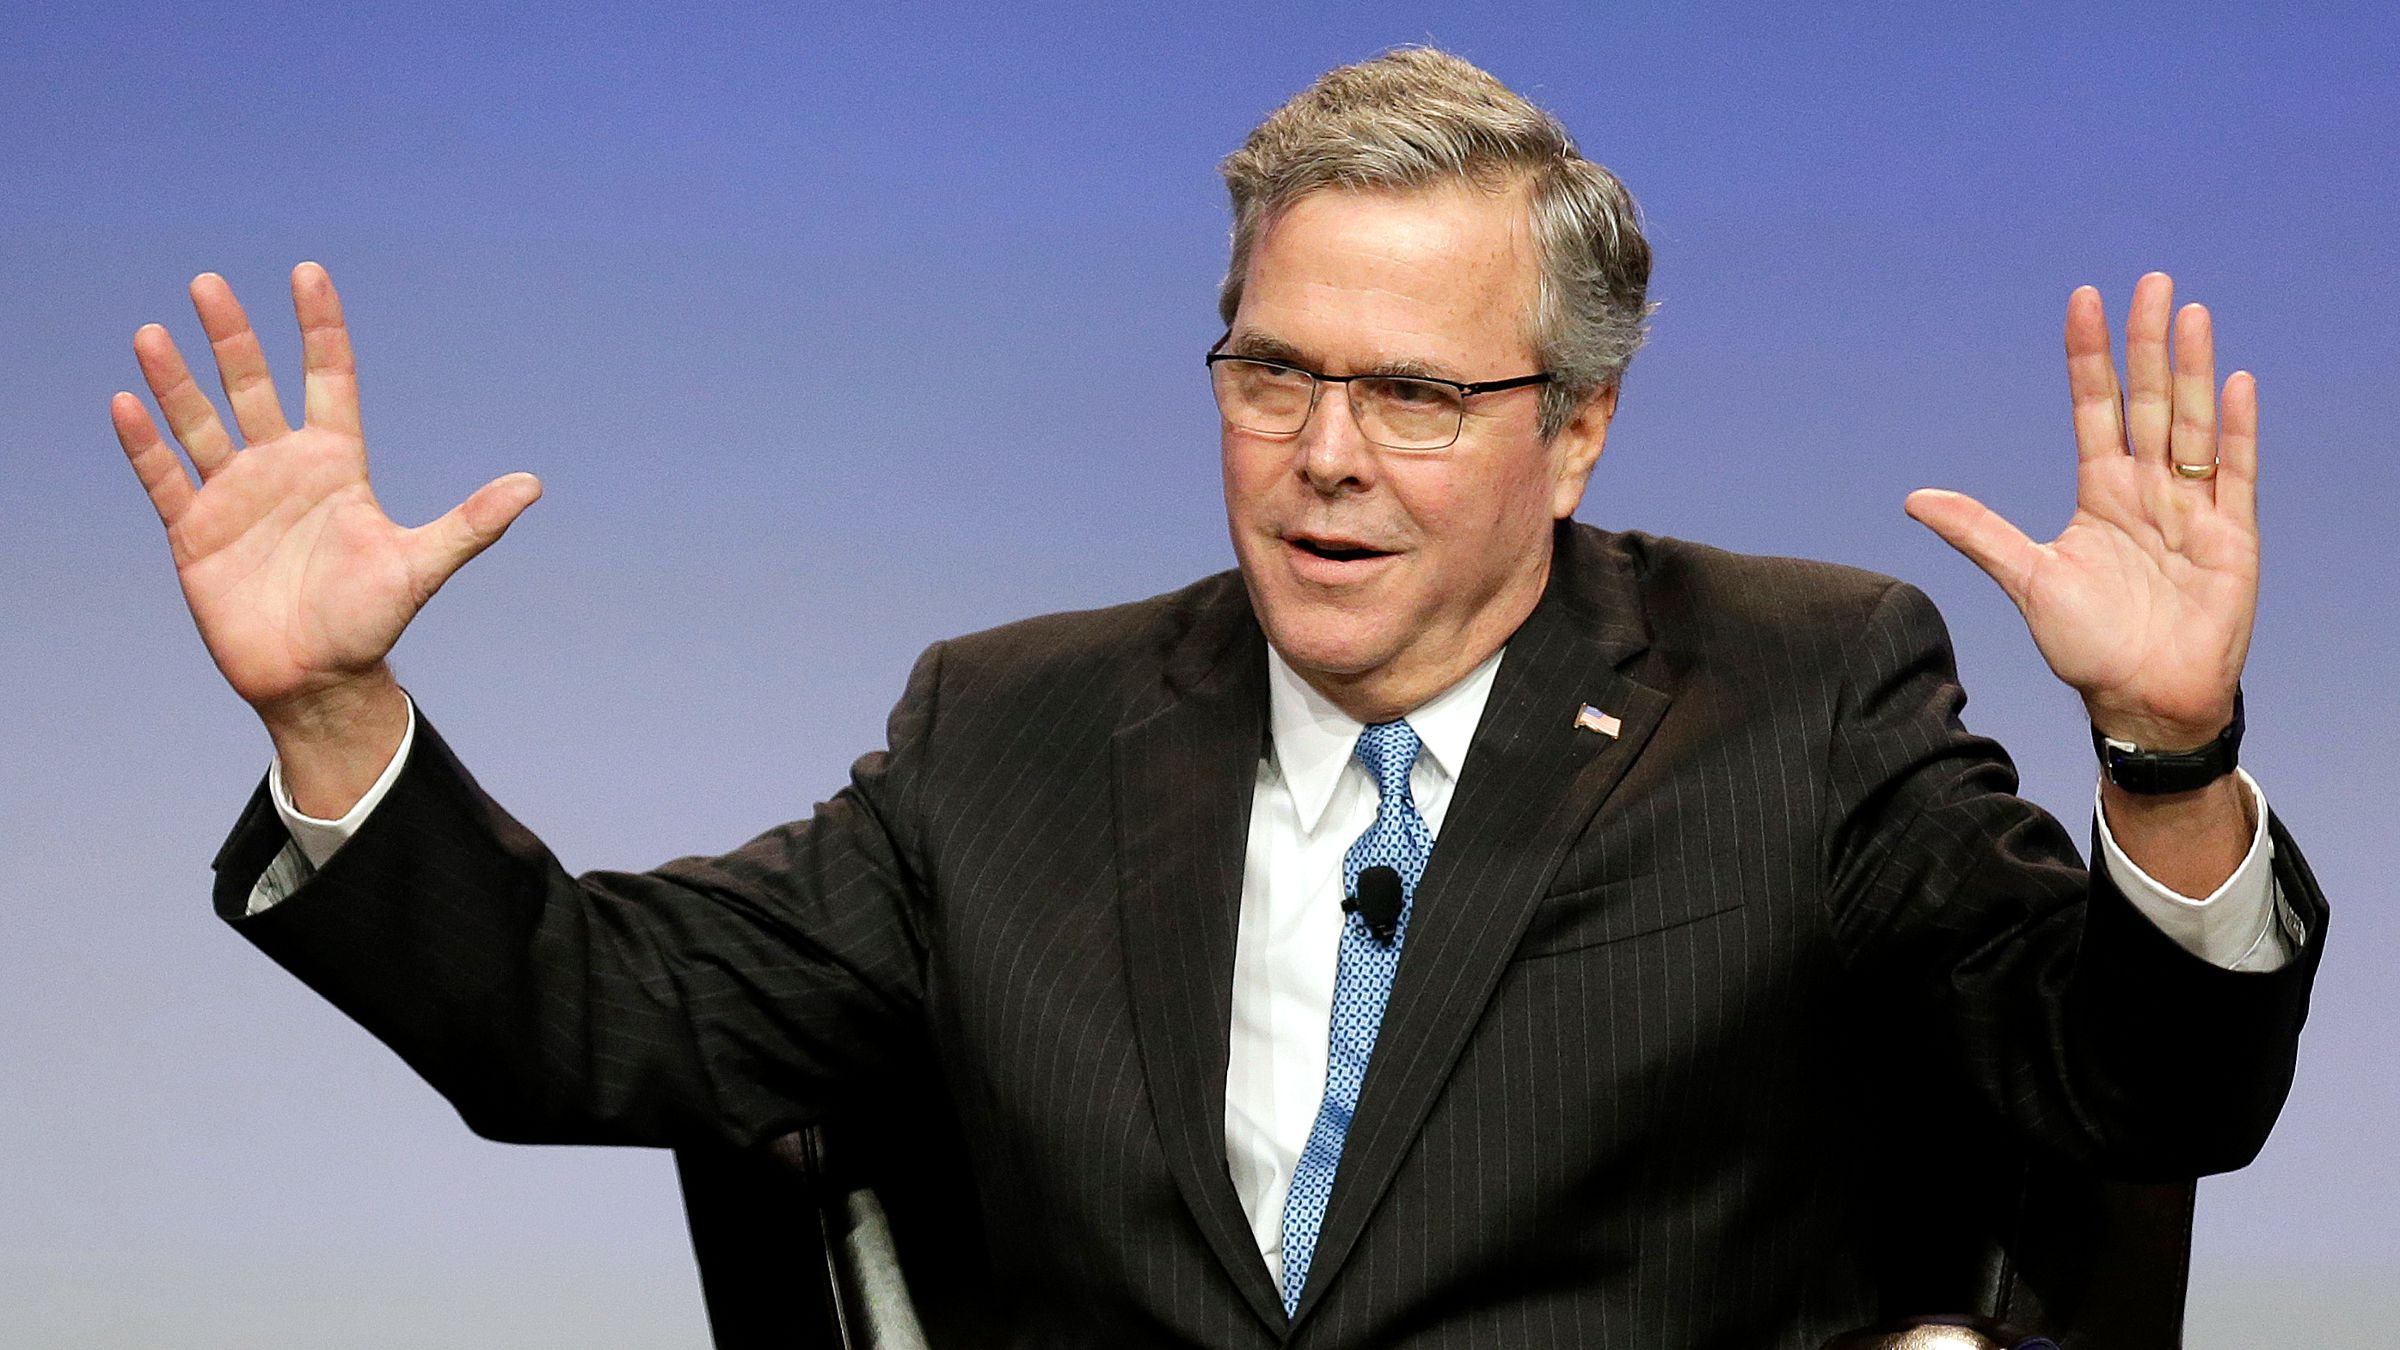 Former Florida Gov. Jeb Bush speaks at the National Automobile Dealers Association convention in San Francisco, Friday, Jan. 23, 2015